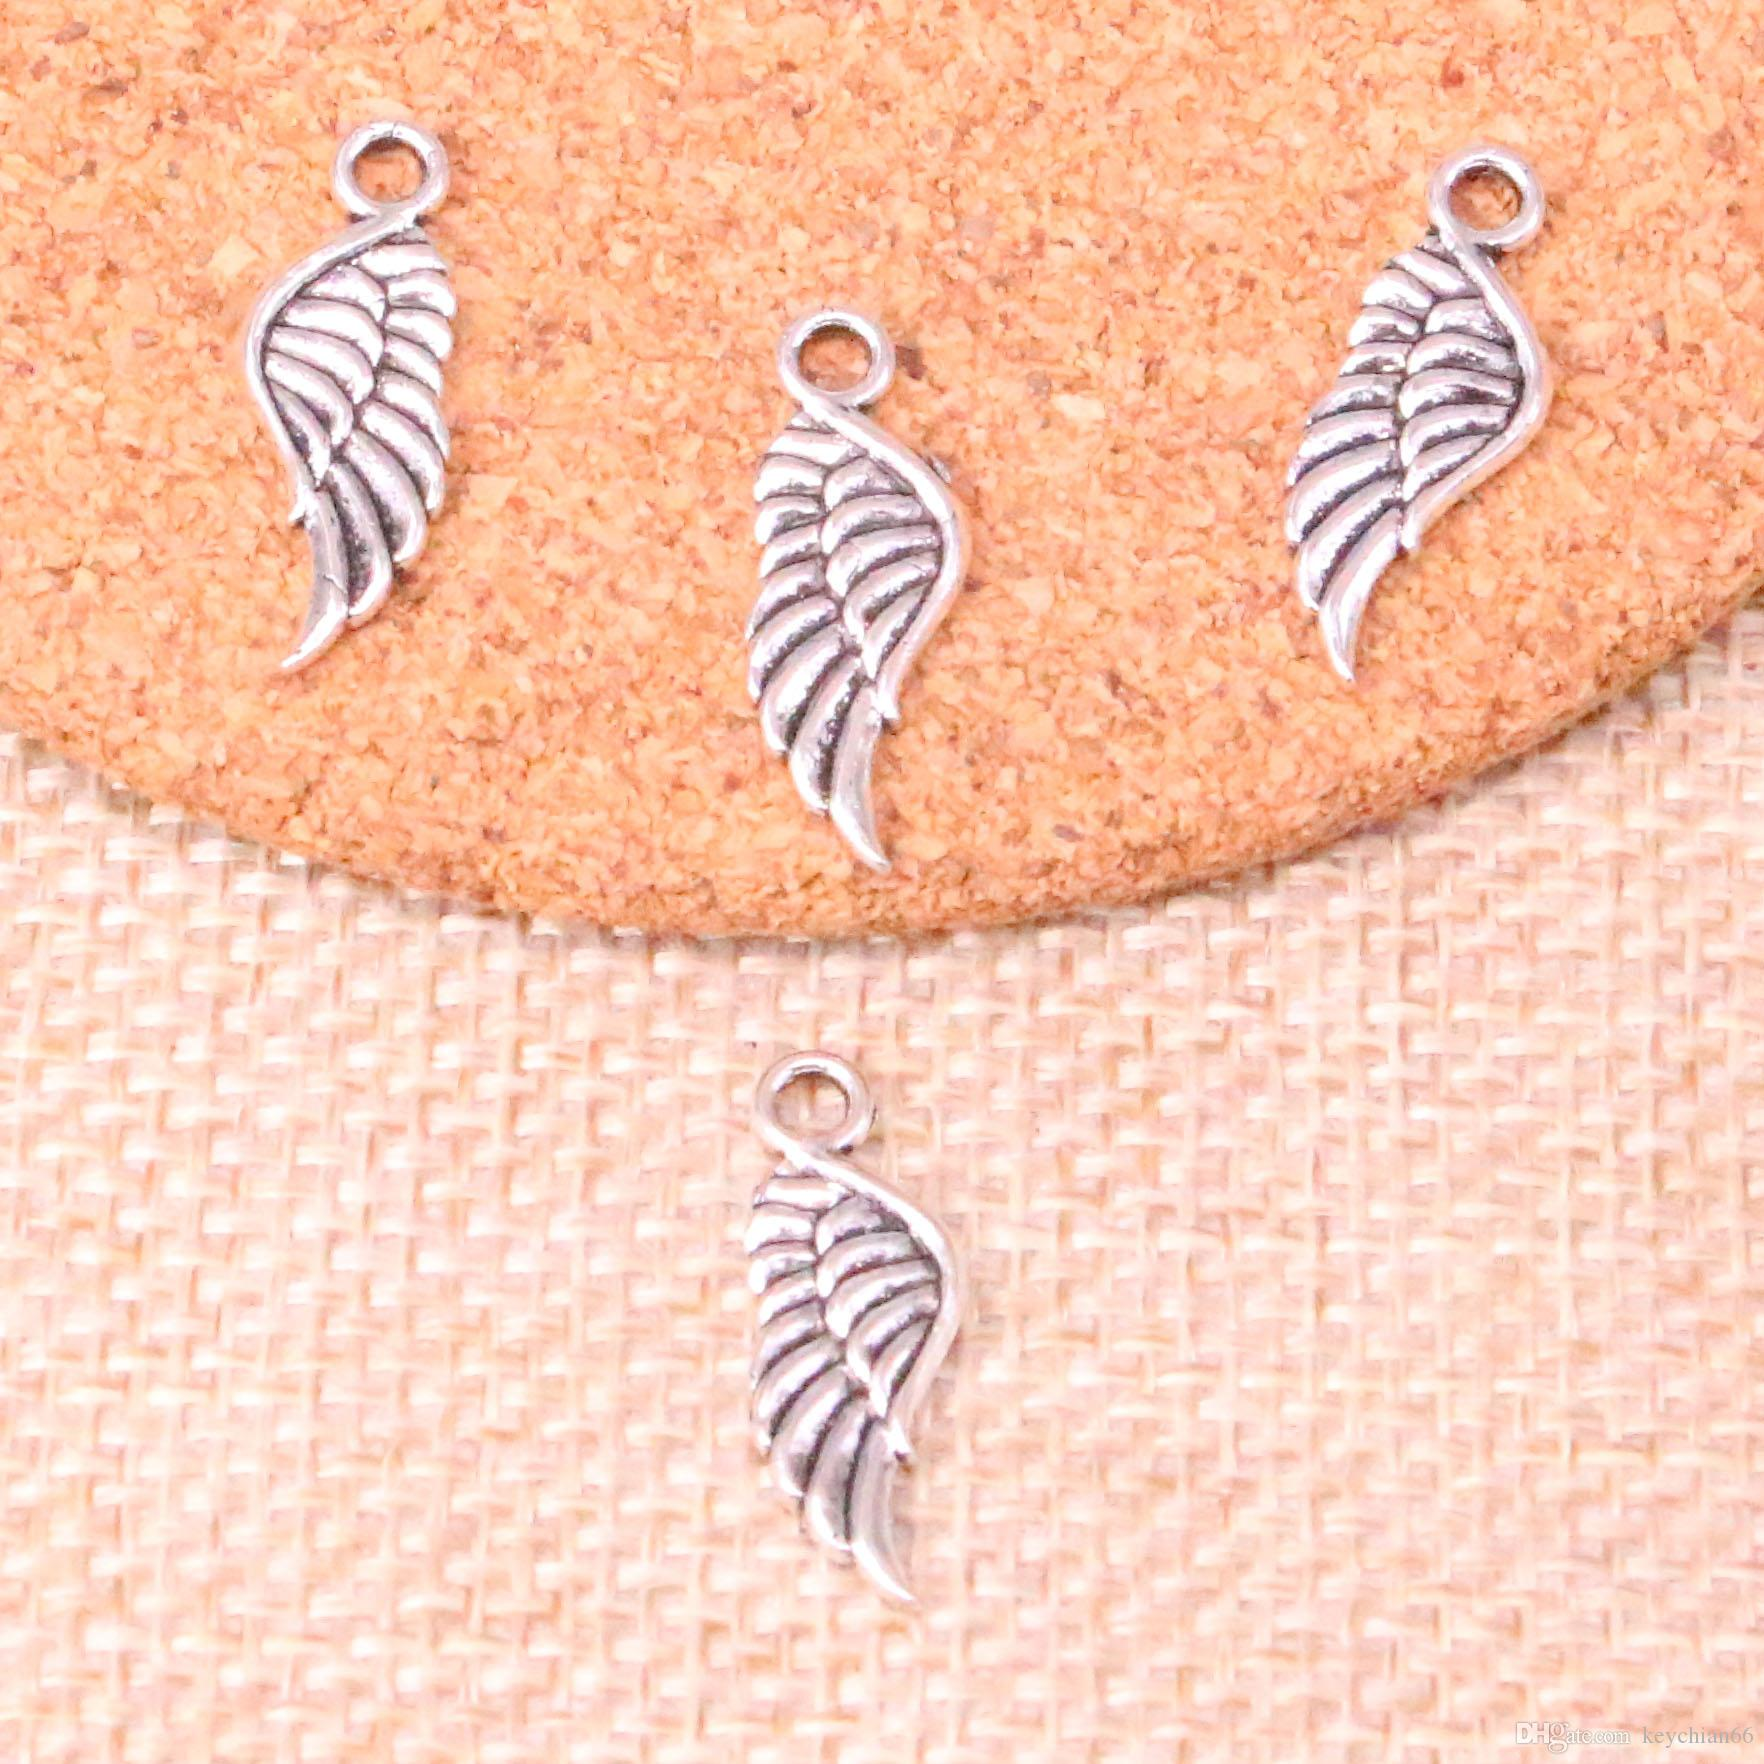 3fc9d9d91 Antique Silver Angel Wings Charms Pendant Fit Bracelets Necklace DIY Metal  Jewelry Making 21*8mm Charms Pendant Online with $14.98/Piece on  Keychian66's ...